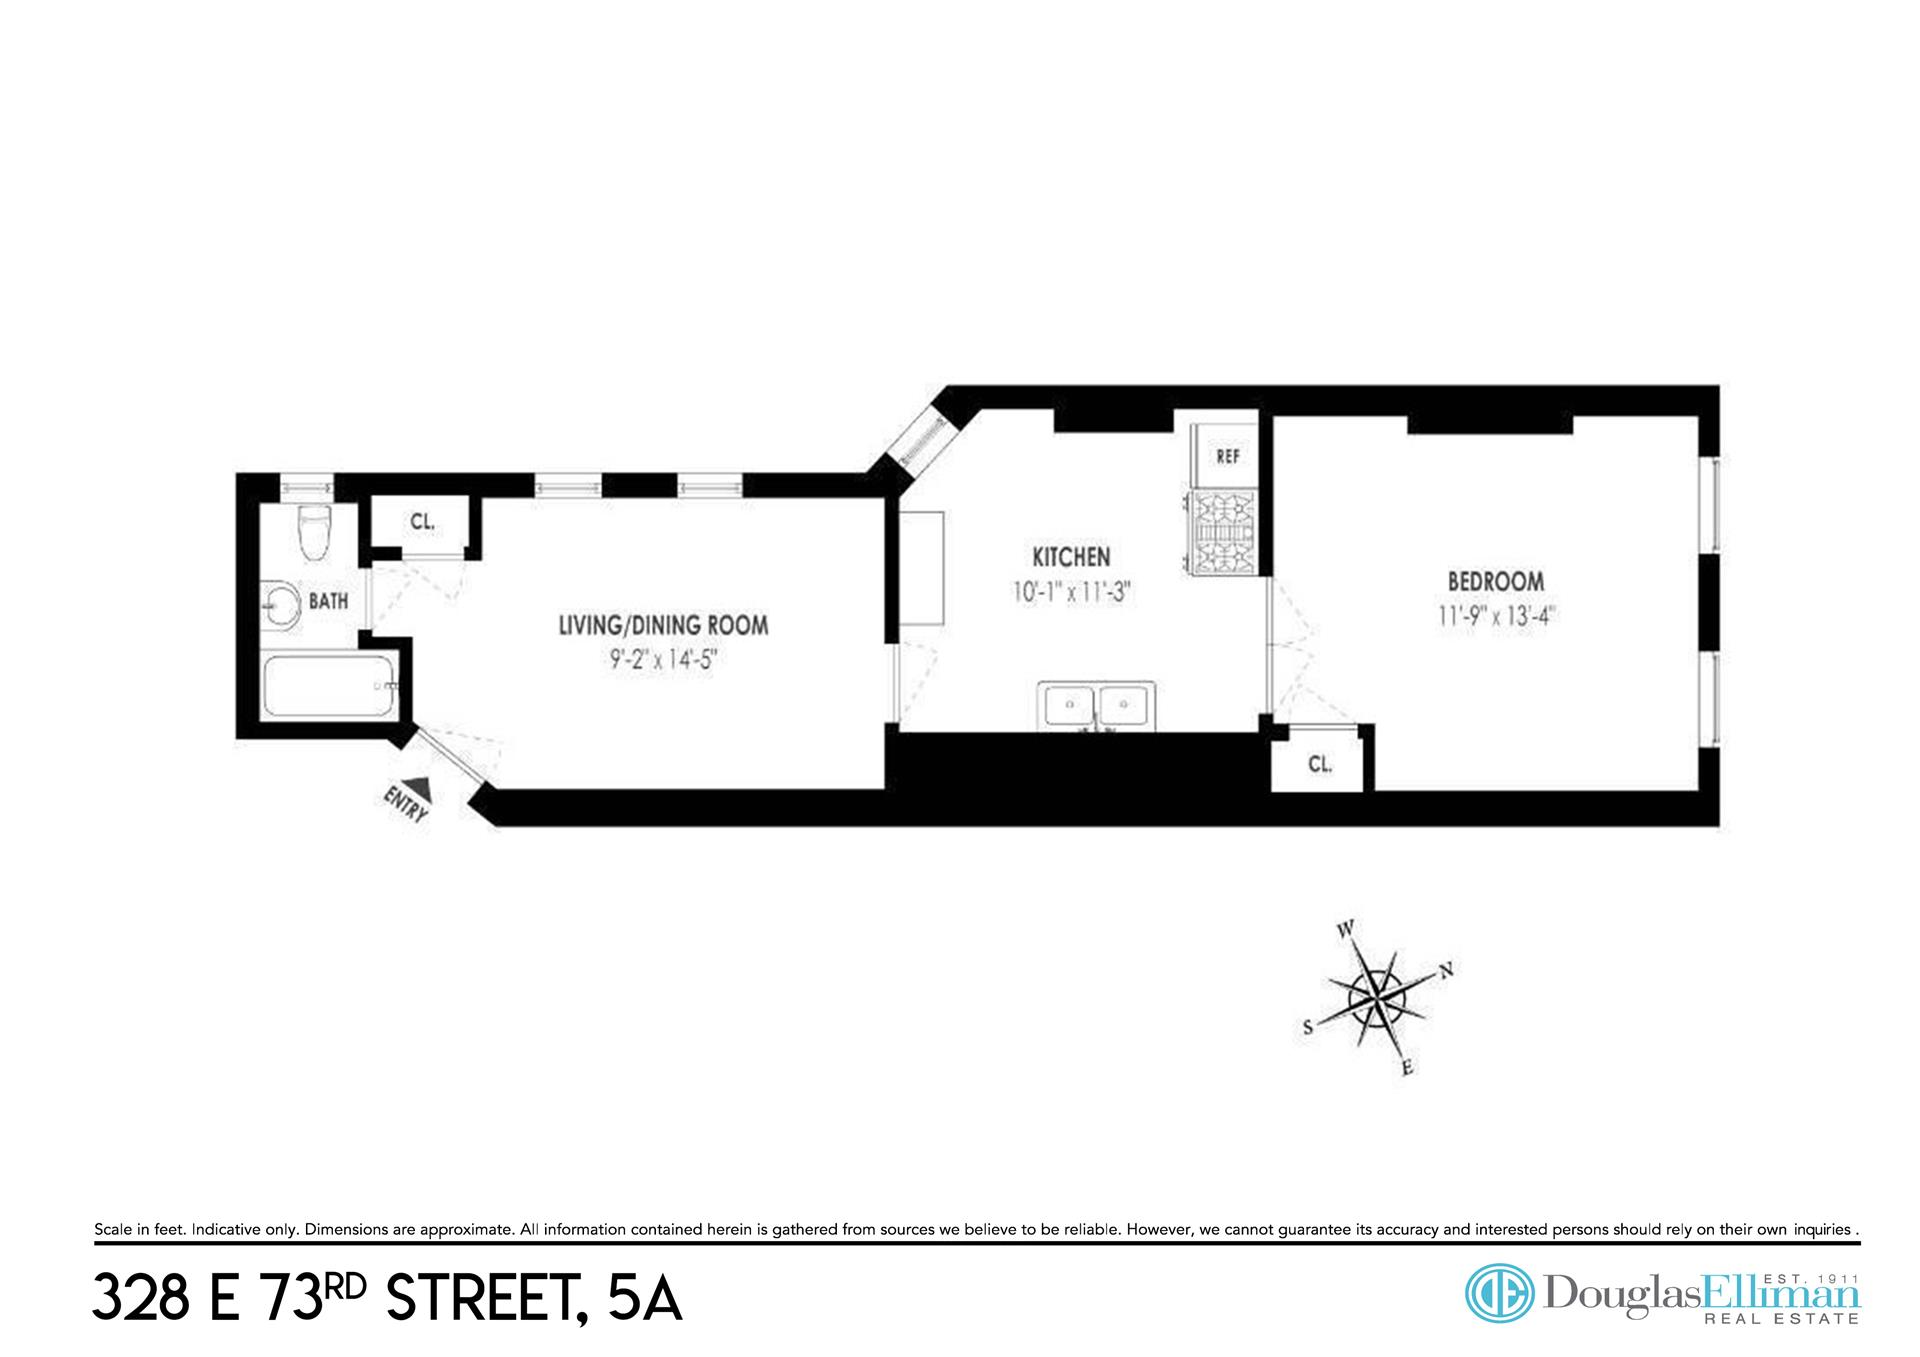 Floor plan of 328 East 73rd Street, 5A - Upper East Side, New York